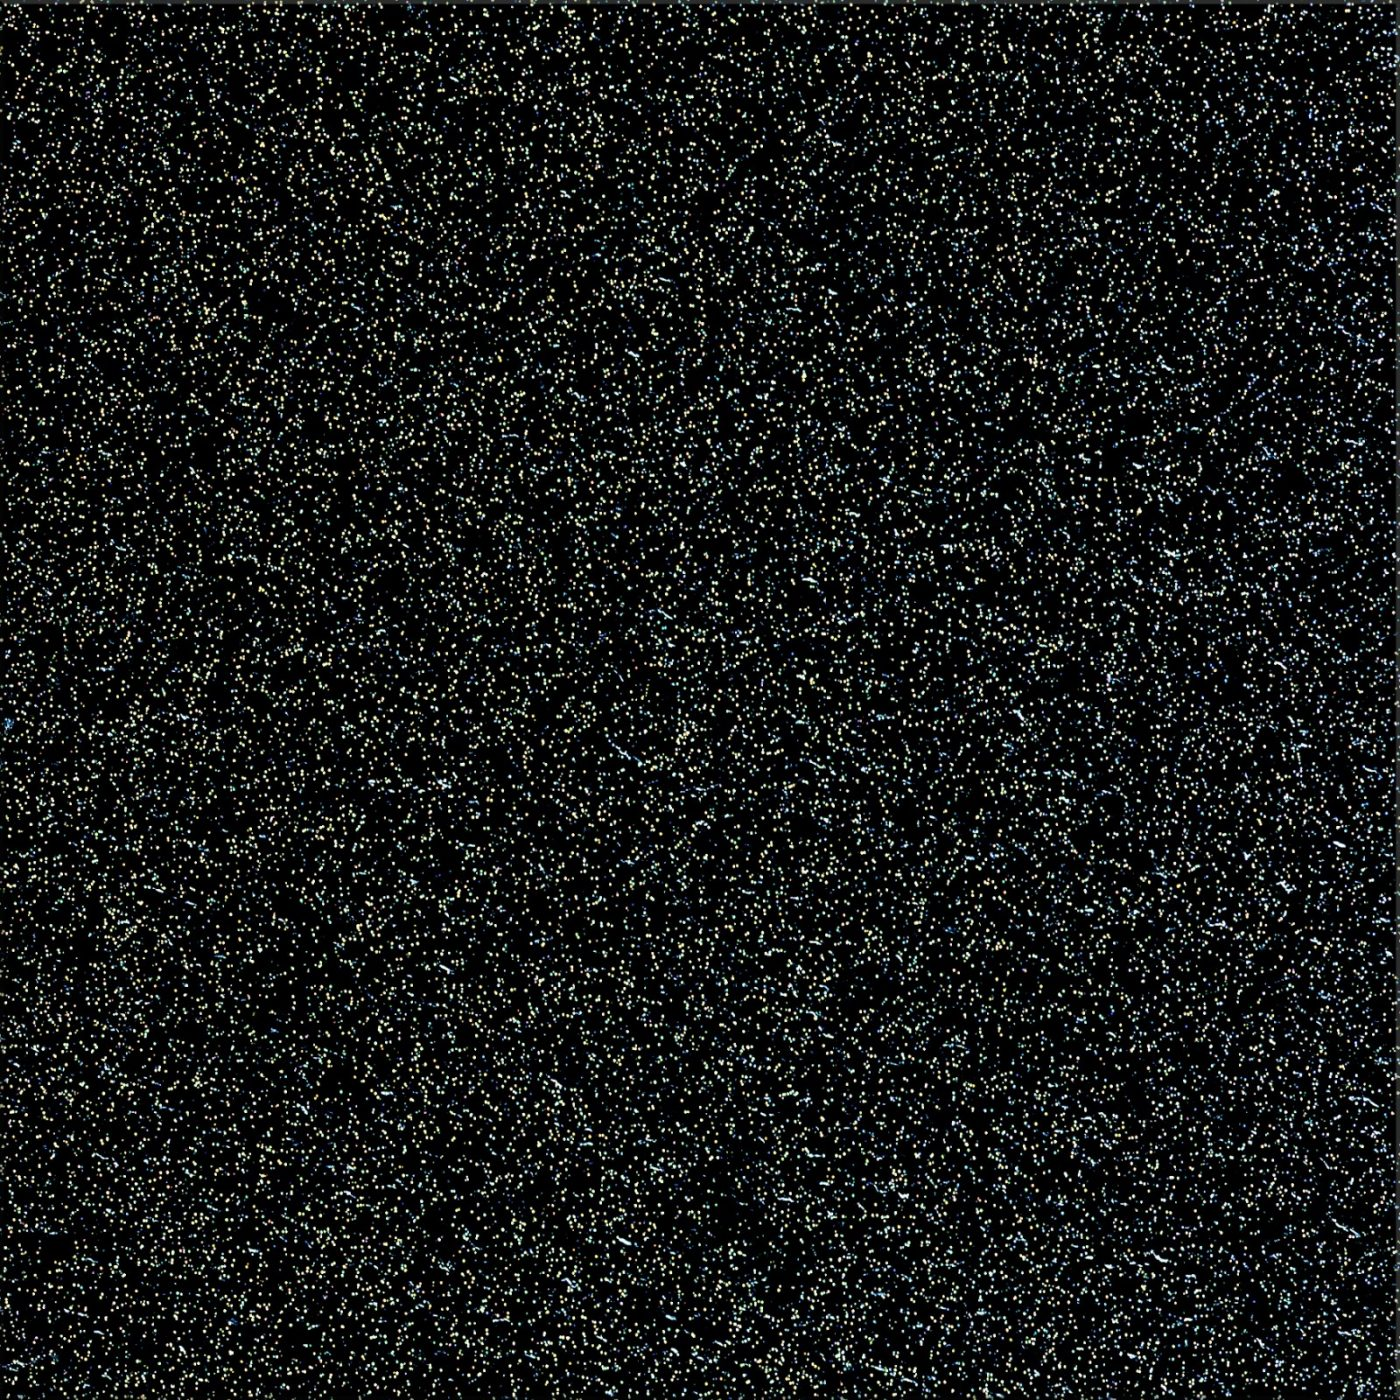 Sparkle Black swatch